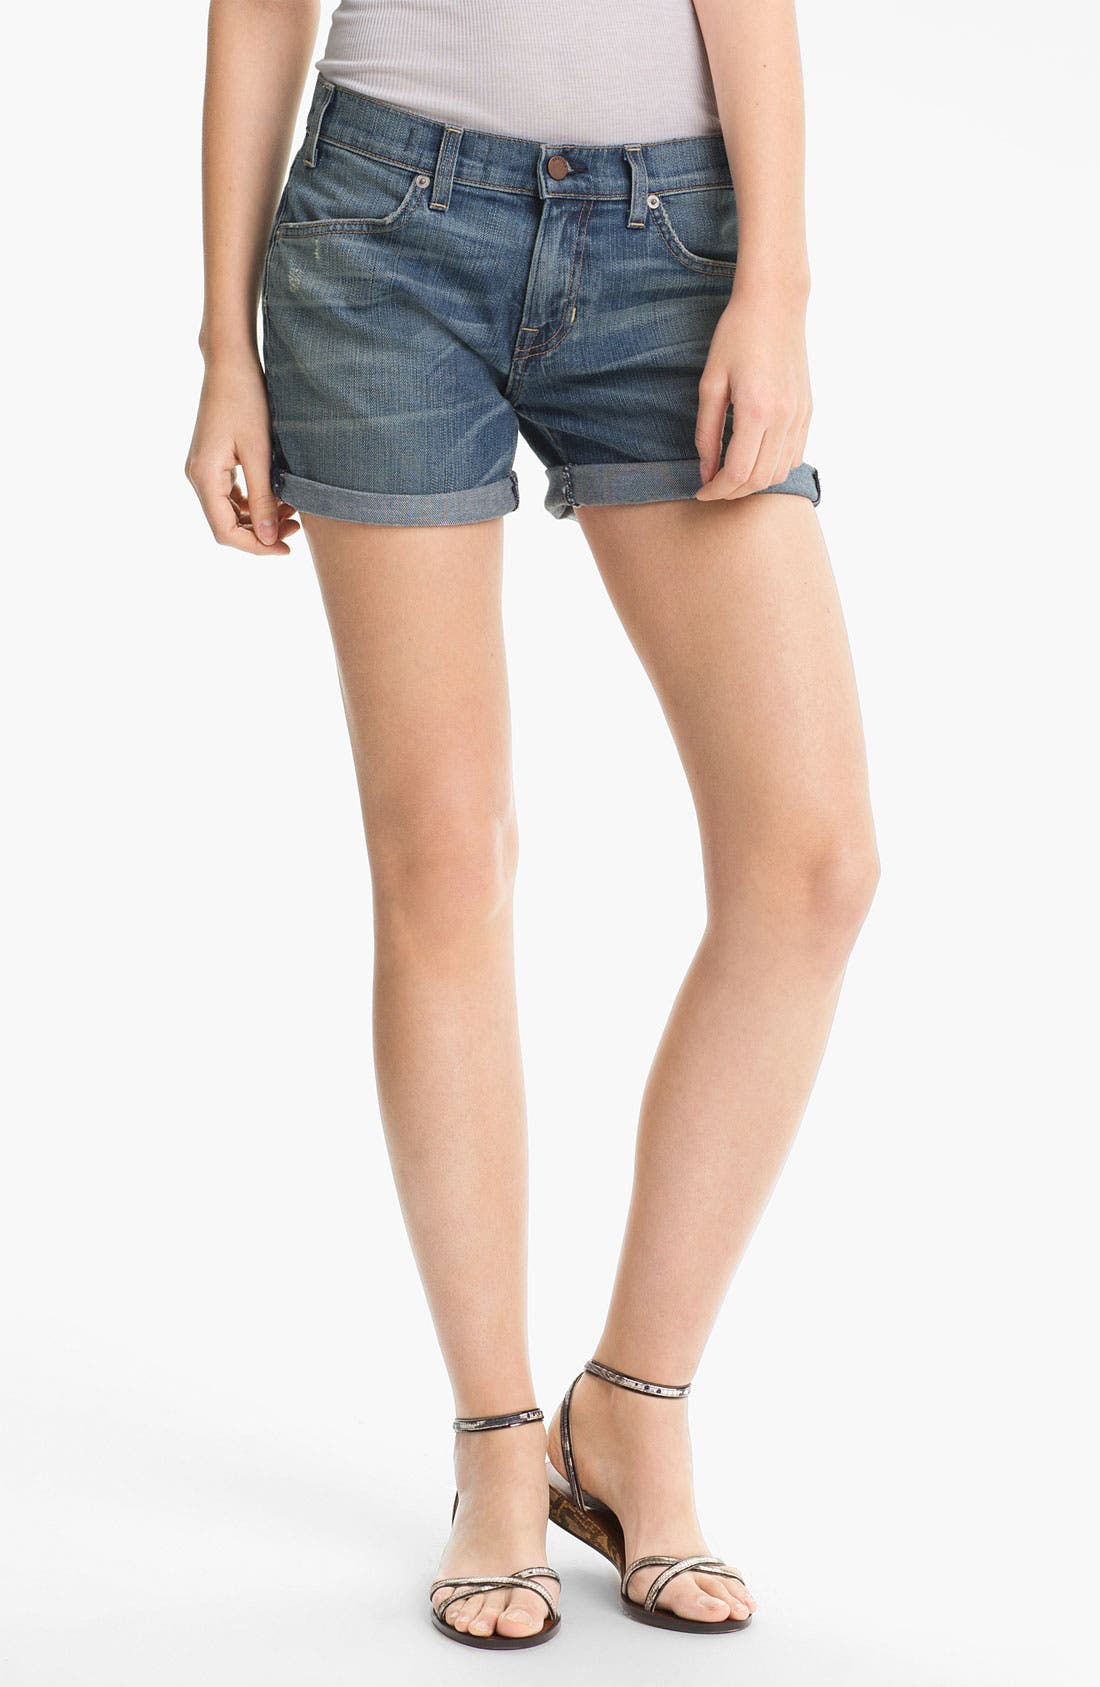 Alternate Image 1 Selected - TEXTILE Elizabeth and James 'Nell' Cuffed Denim Shorts